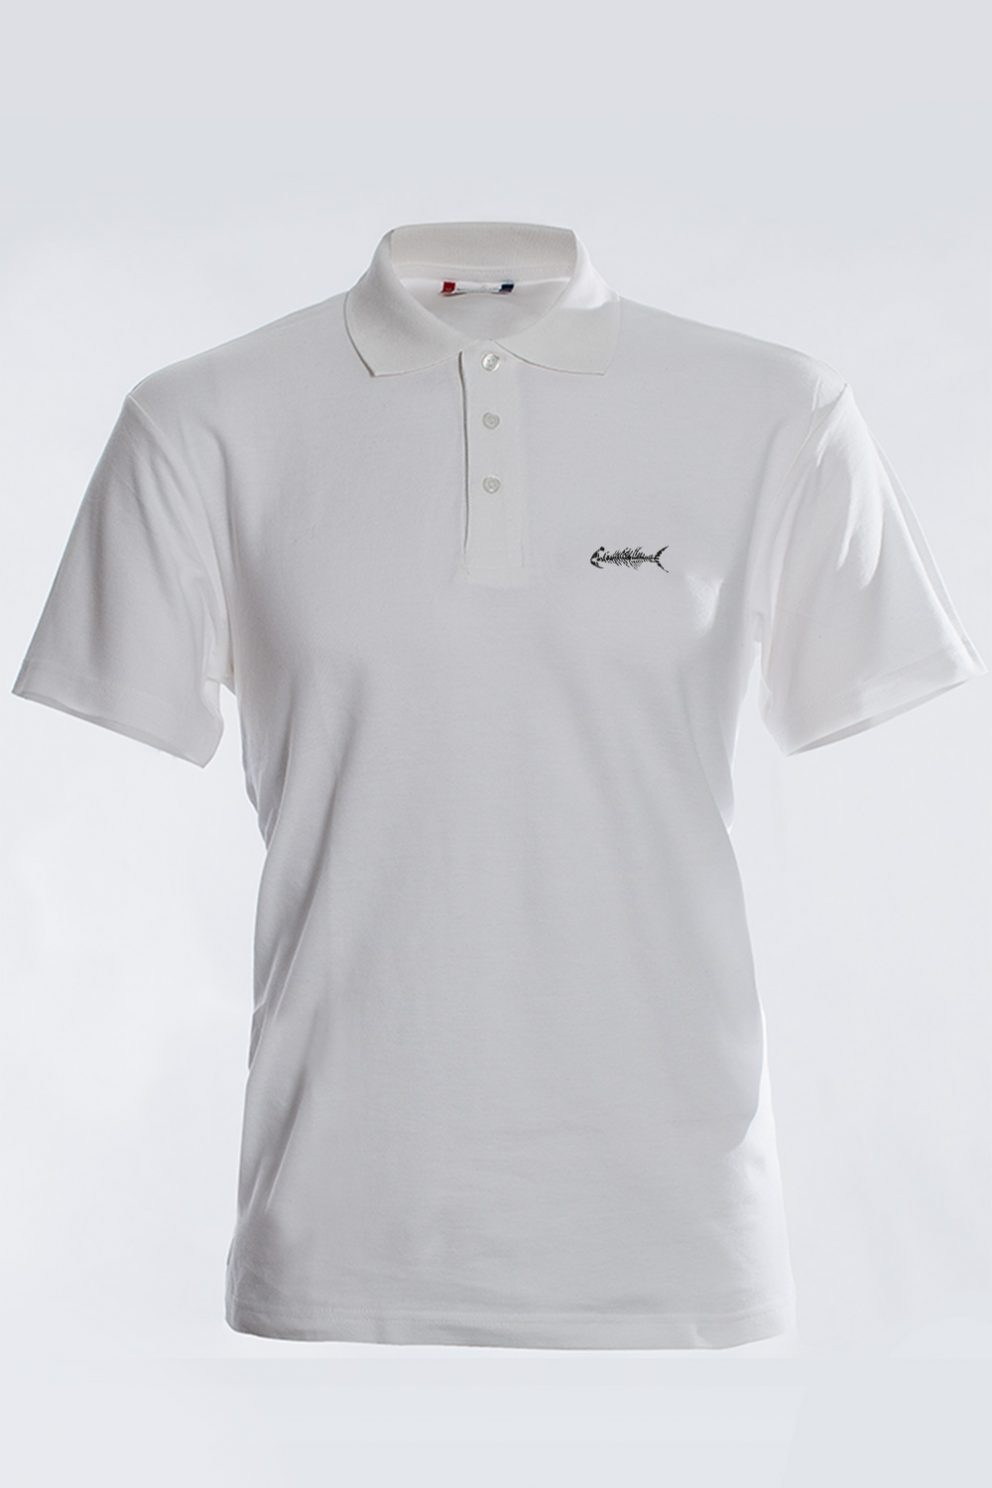 Kyst-shirt Bygdoy Polo